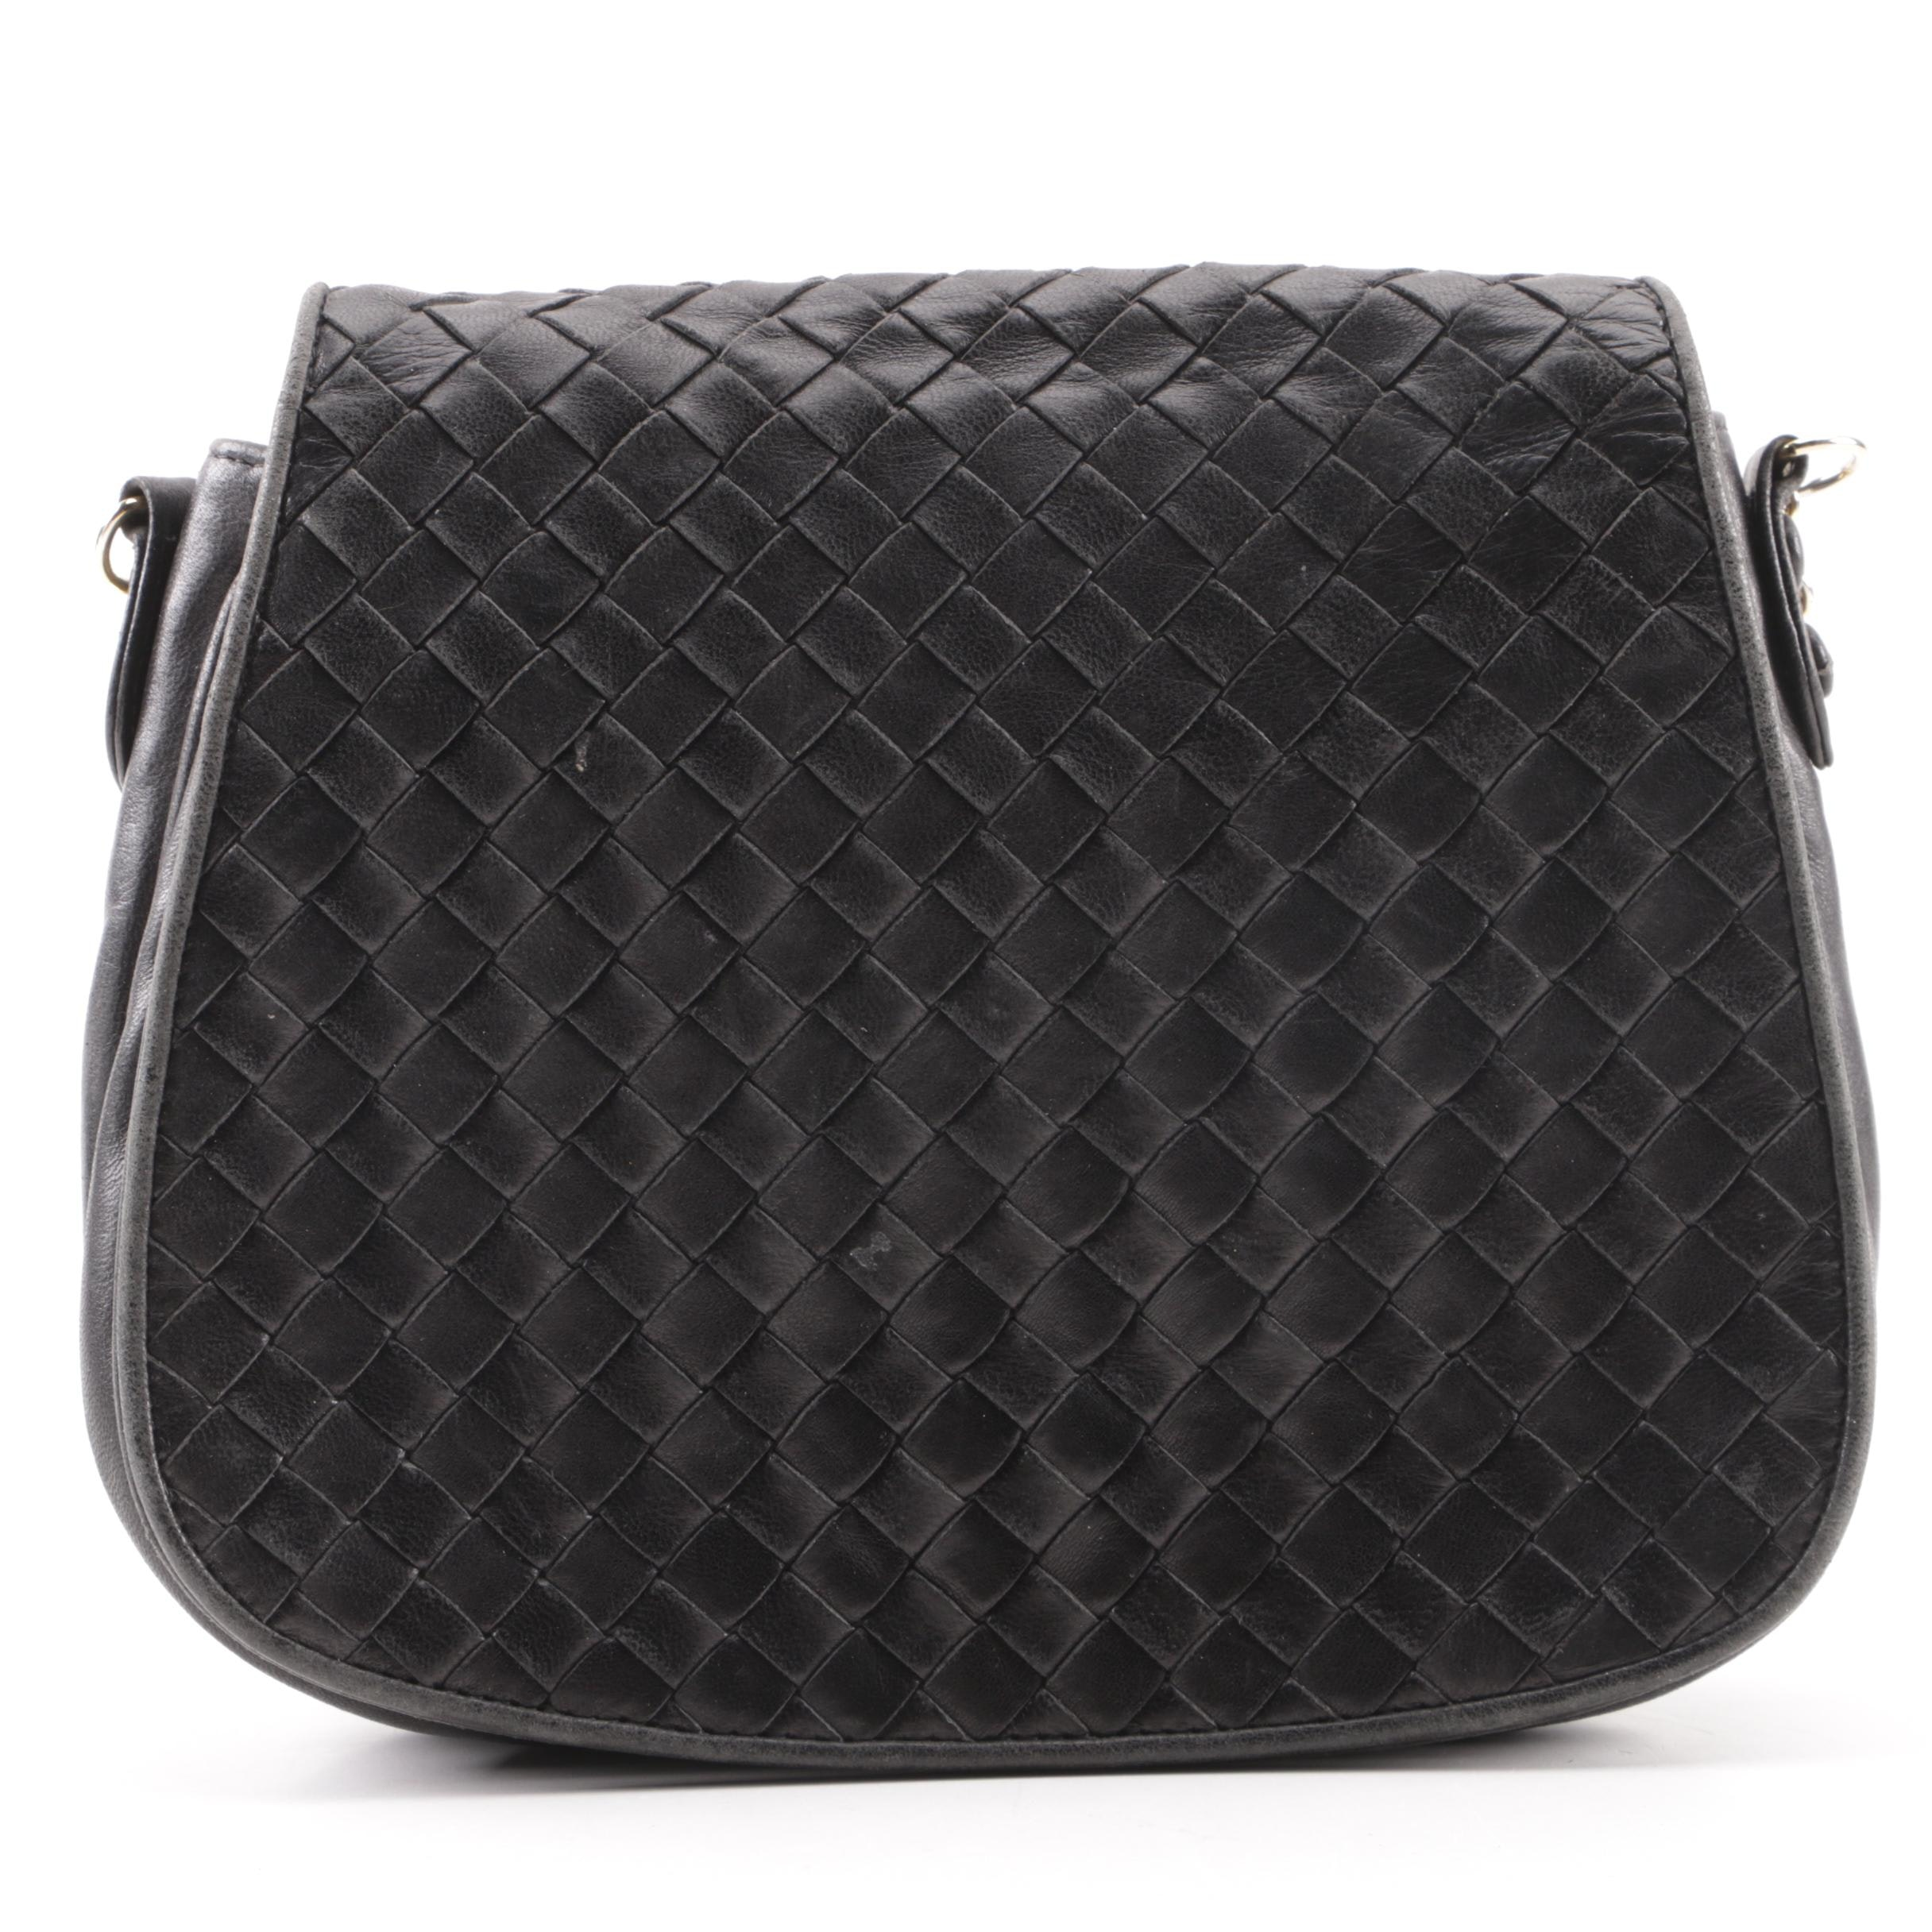 Bottega Veneta Black Intrecciato Leather Saddle Bag